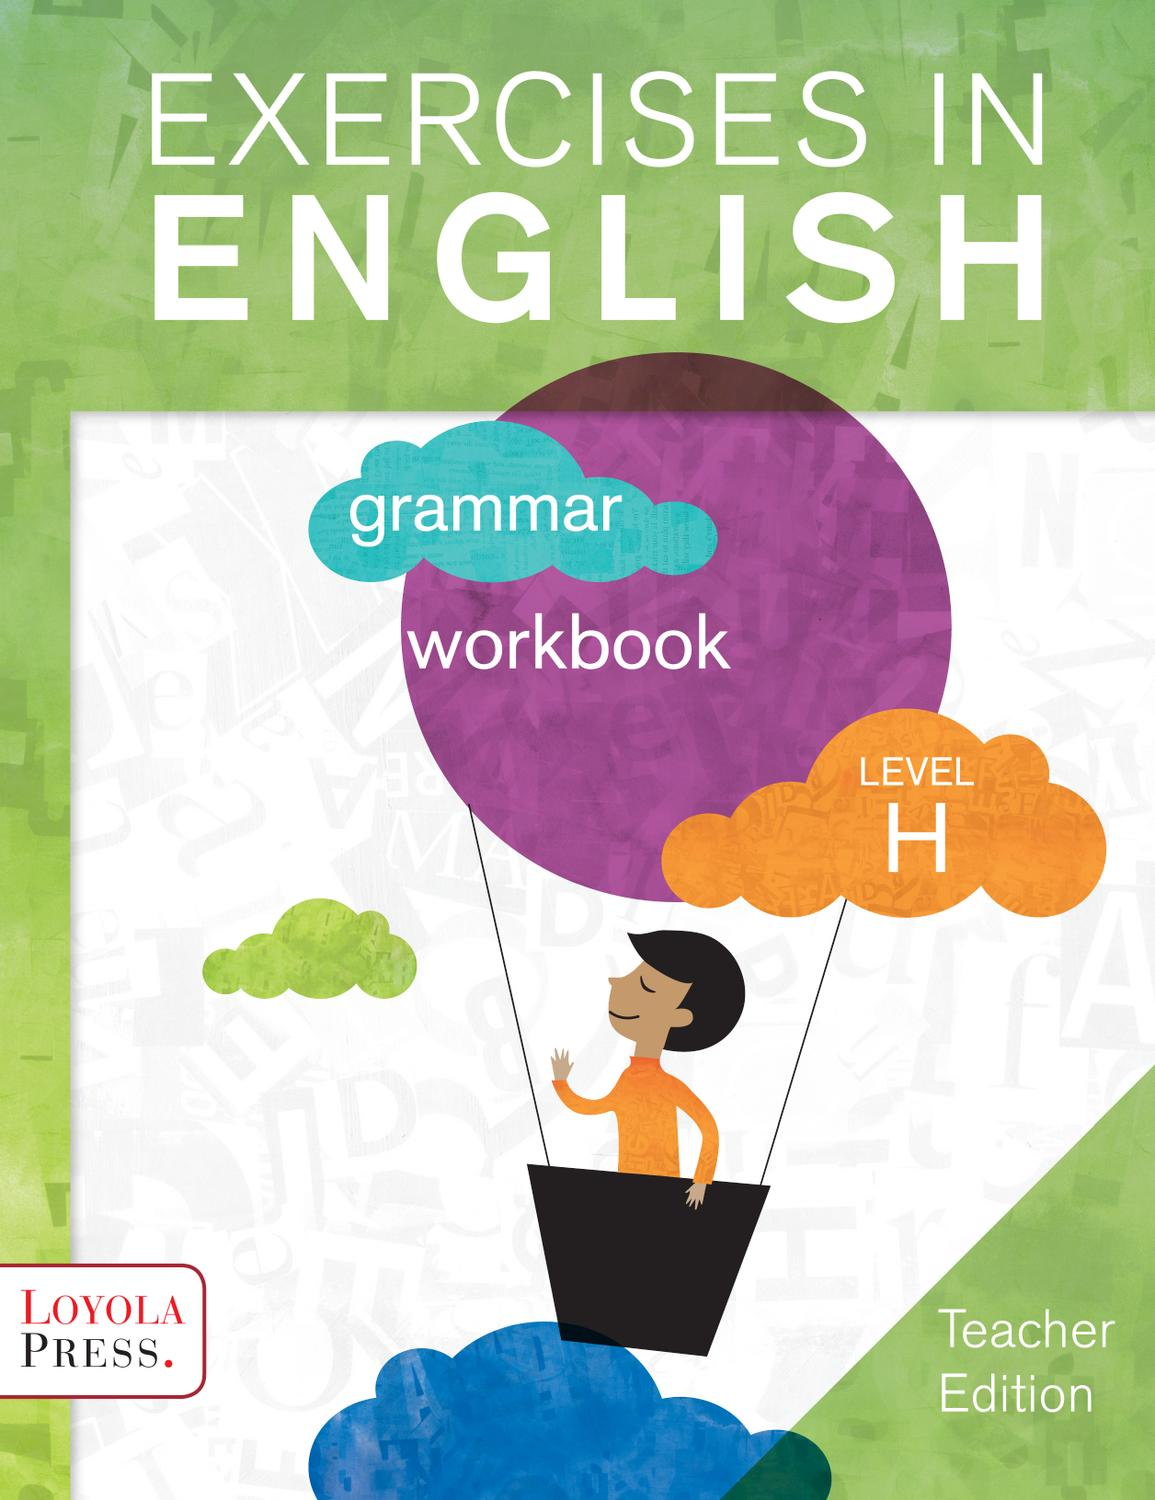 exercises in english 2013 level h teacher edition by loyola press issuu